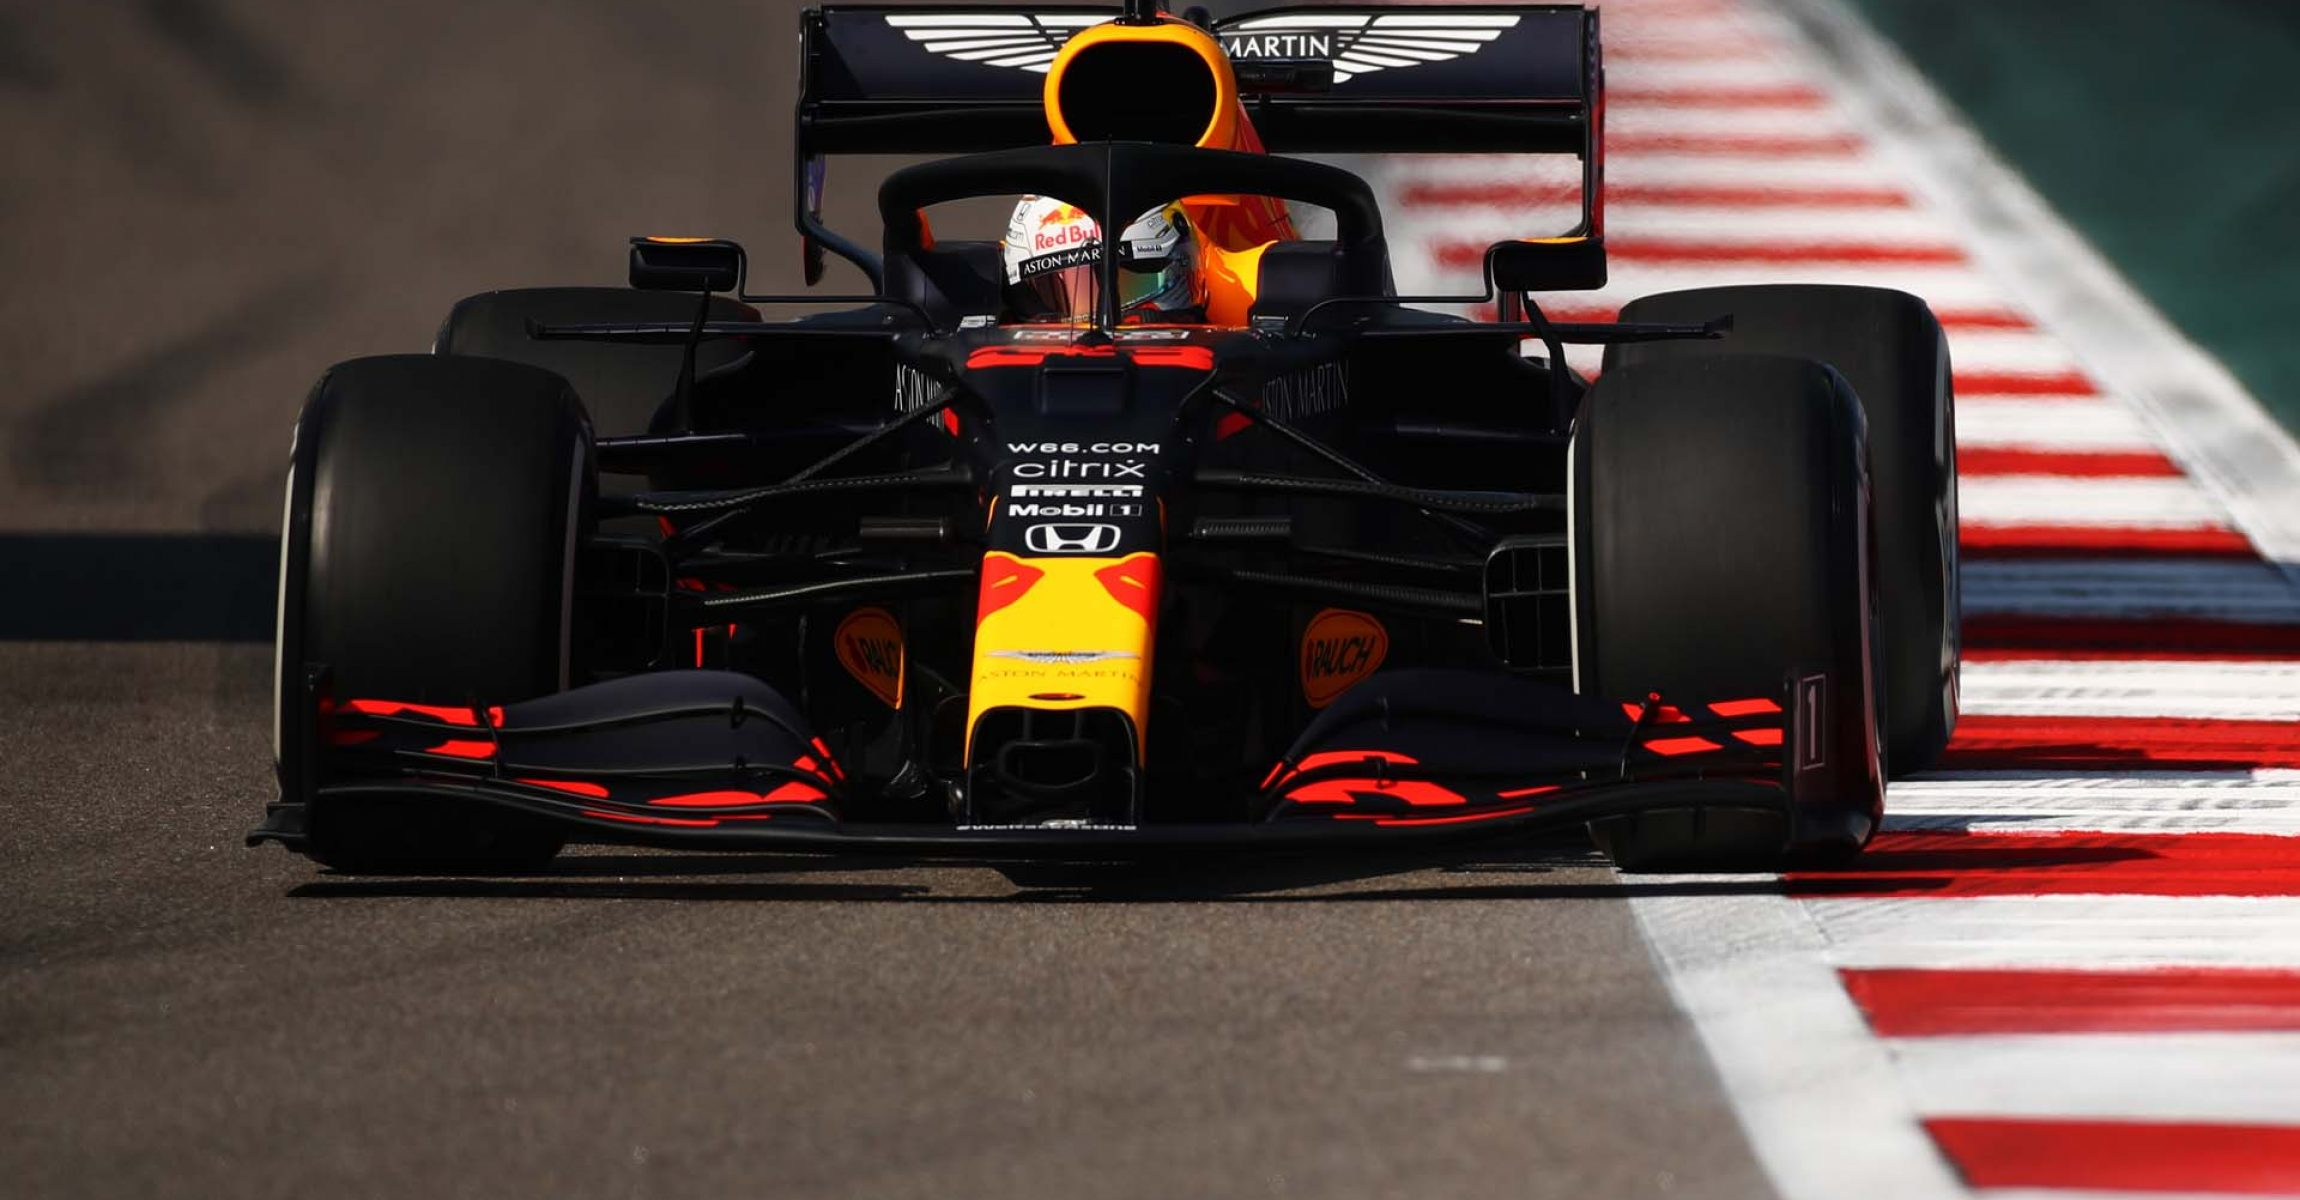 SOCHI, RUSSIA - SEPTEMBER 25: Max Verstappen of the Netherlands driving the (33) Aston Martin Red Bull Racing RB16 on track during practice ahead of the F1 Grand Prix of Russia at Sochi Autodrom on September 25, 2020 in Sochi, Russia. (Photo by Bryn Lennon/Getty Images)